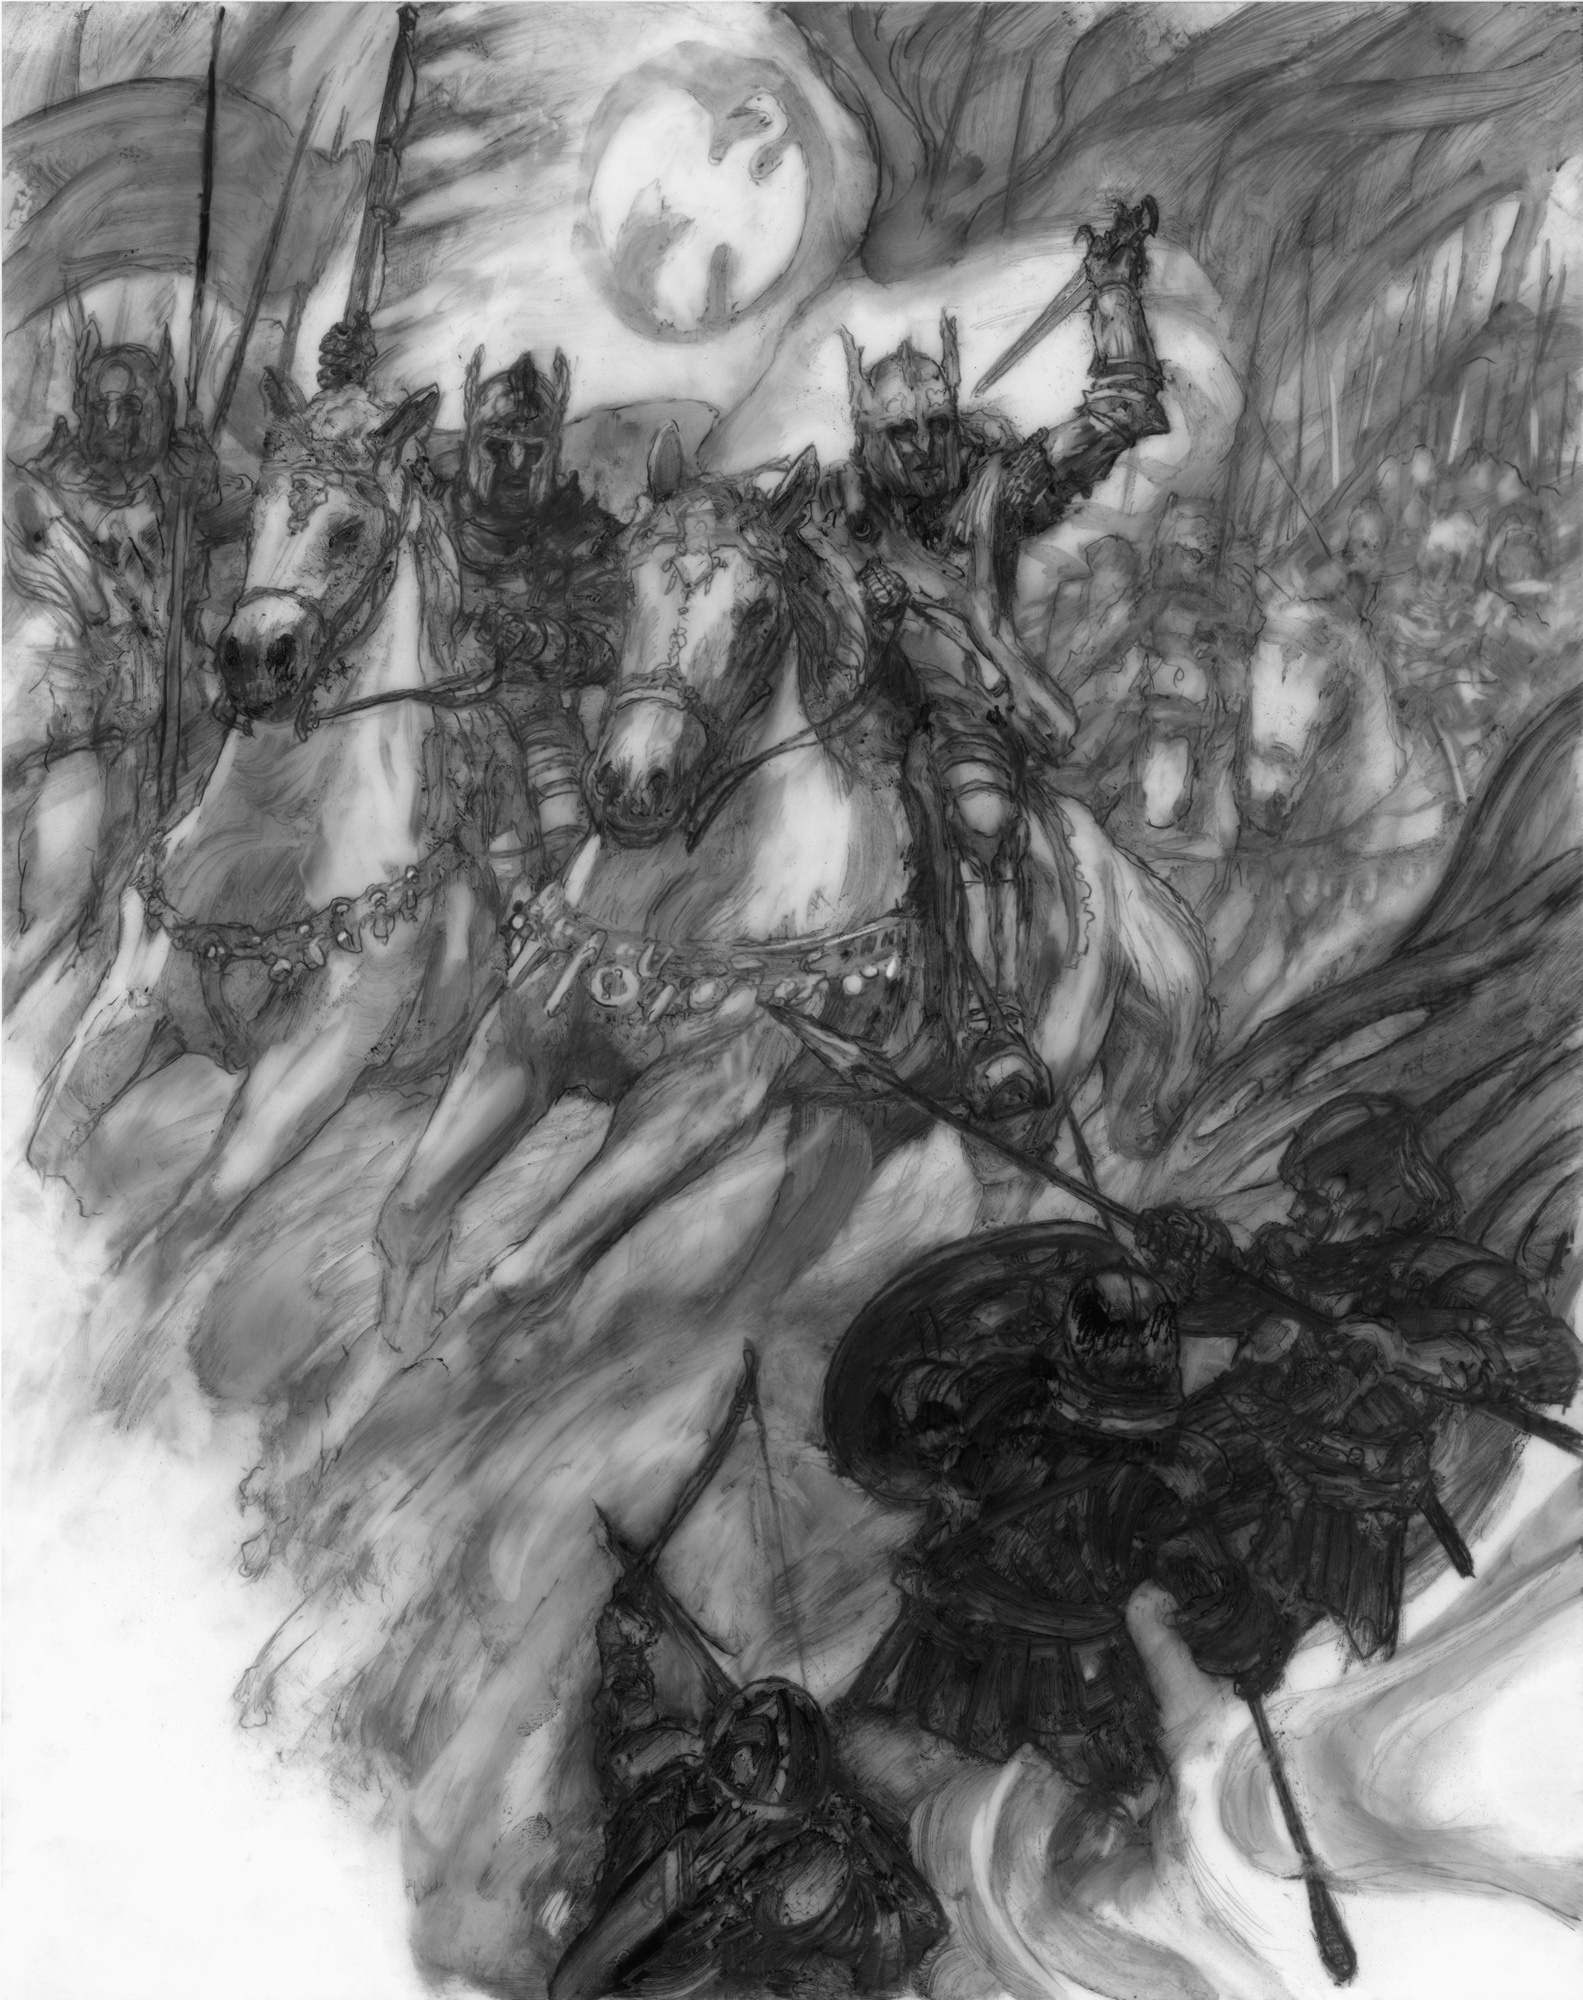 "Battle of Bestanag 14"" x 11"" Graphite on paper  2019 Interior illustration, one of twelve, for Jacqueline Carey's 'Elegy for Darkness' from Grim Oak Press"